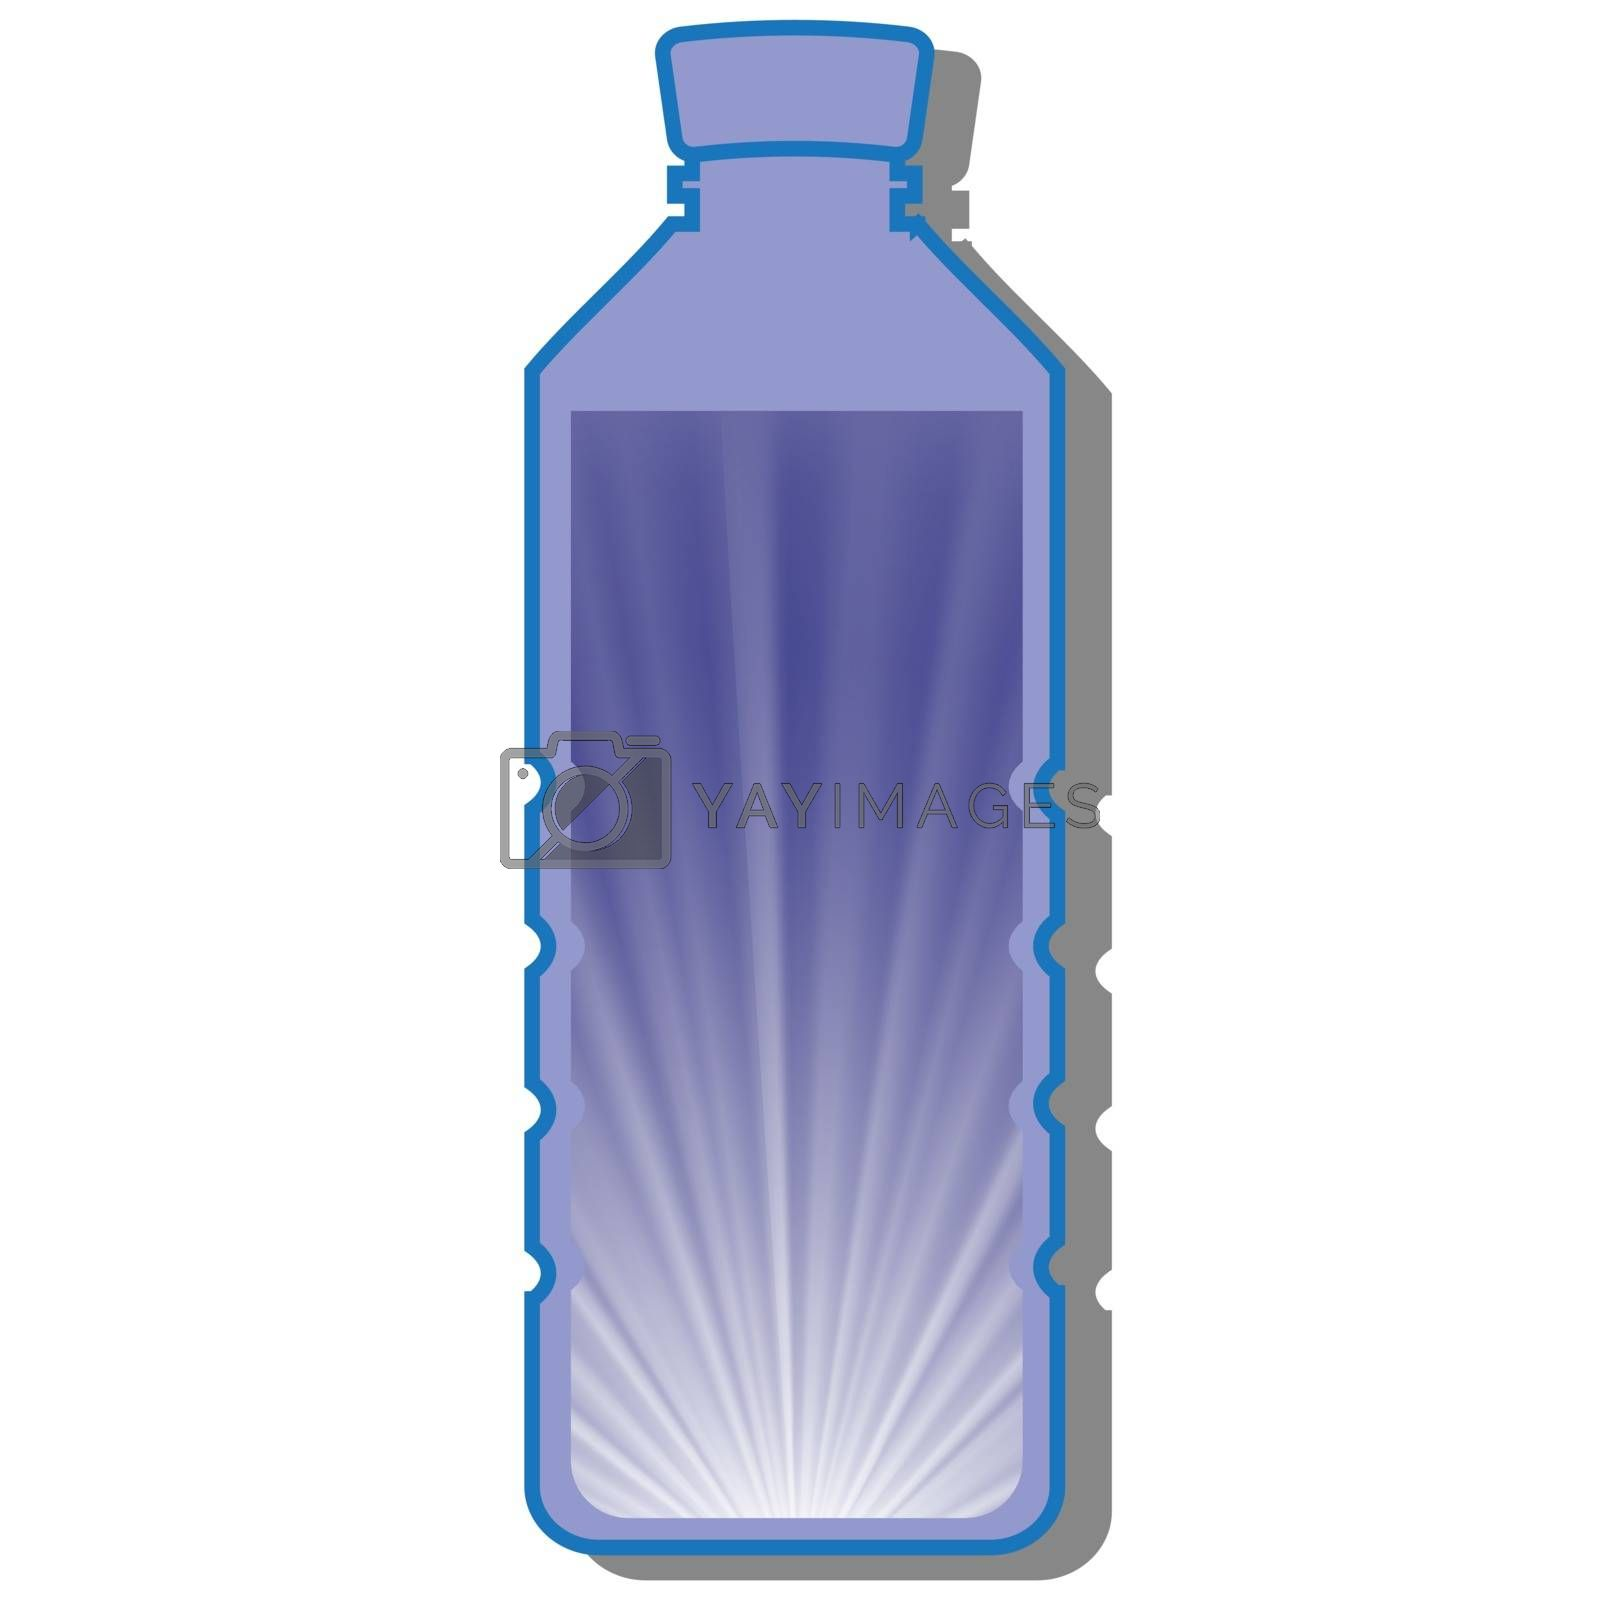 Royalty free image of bottle of water by valeo5